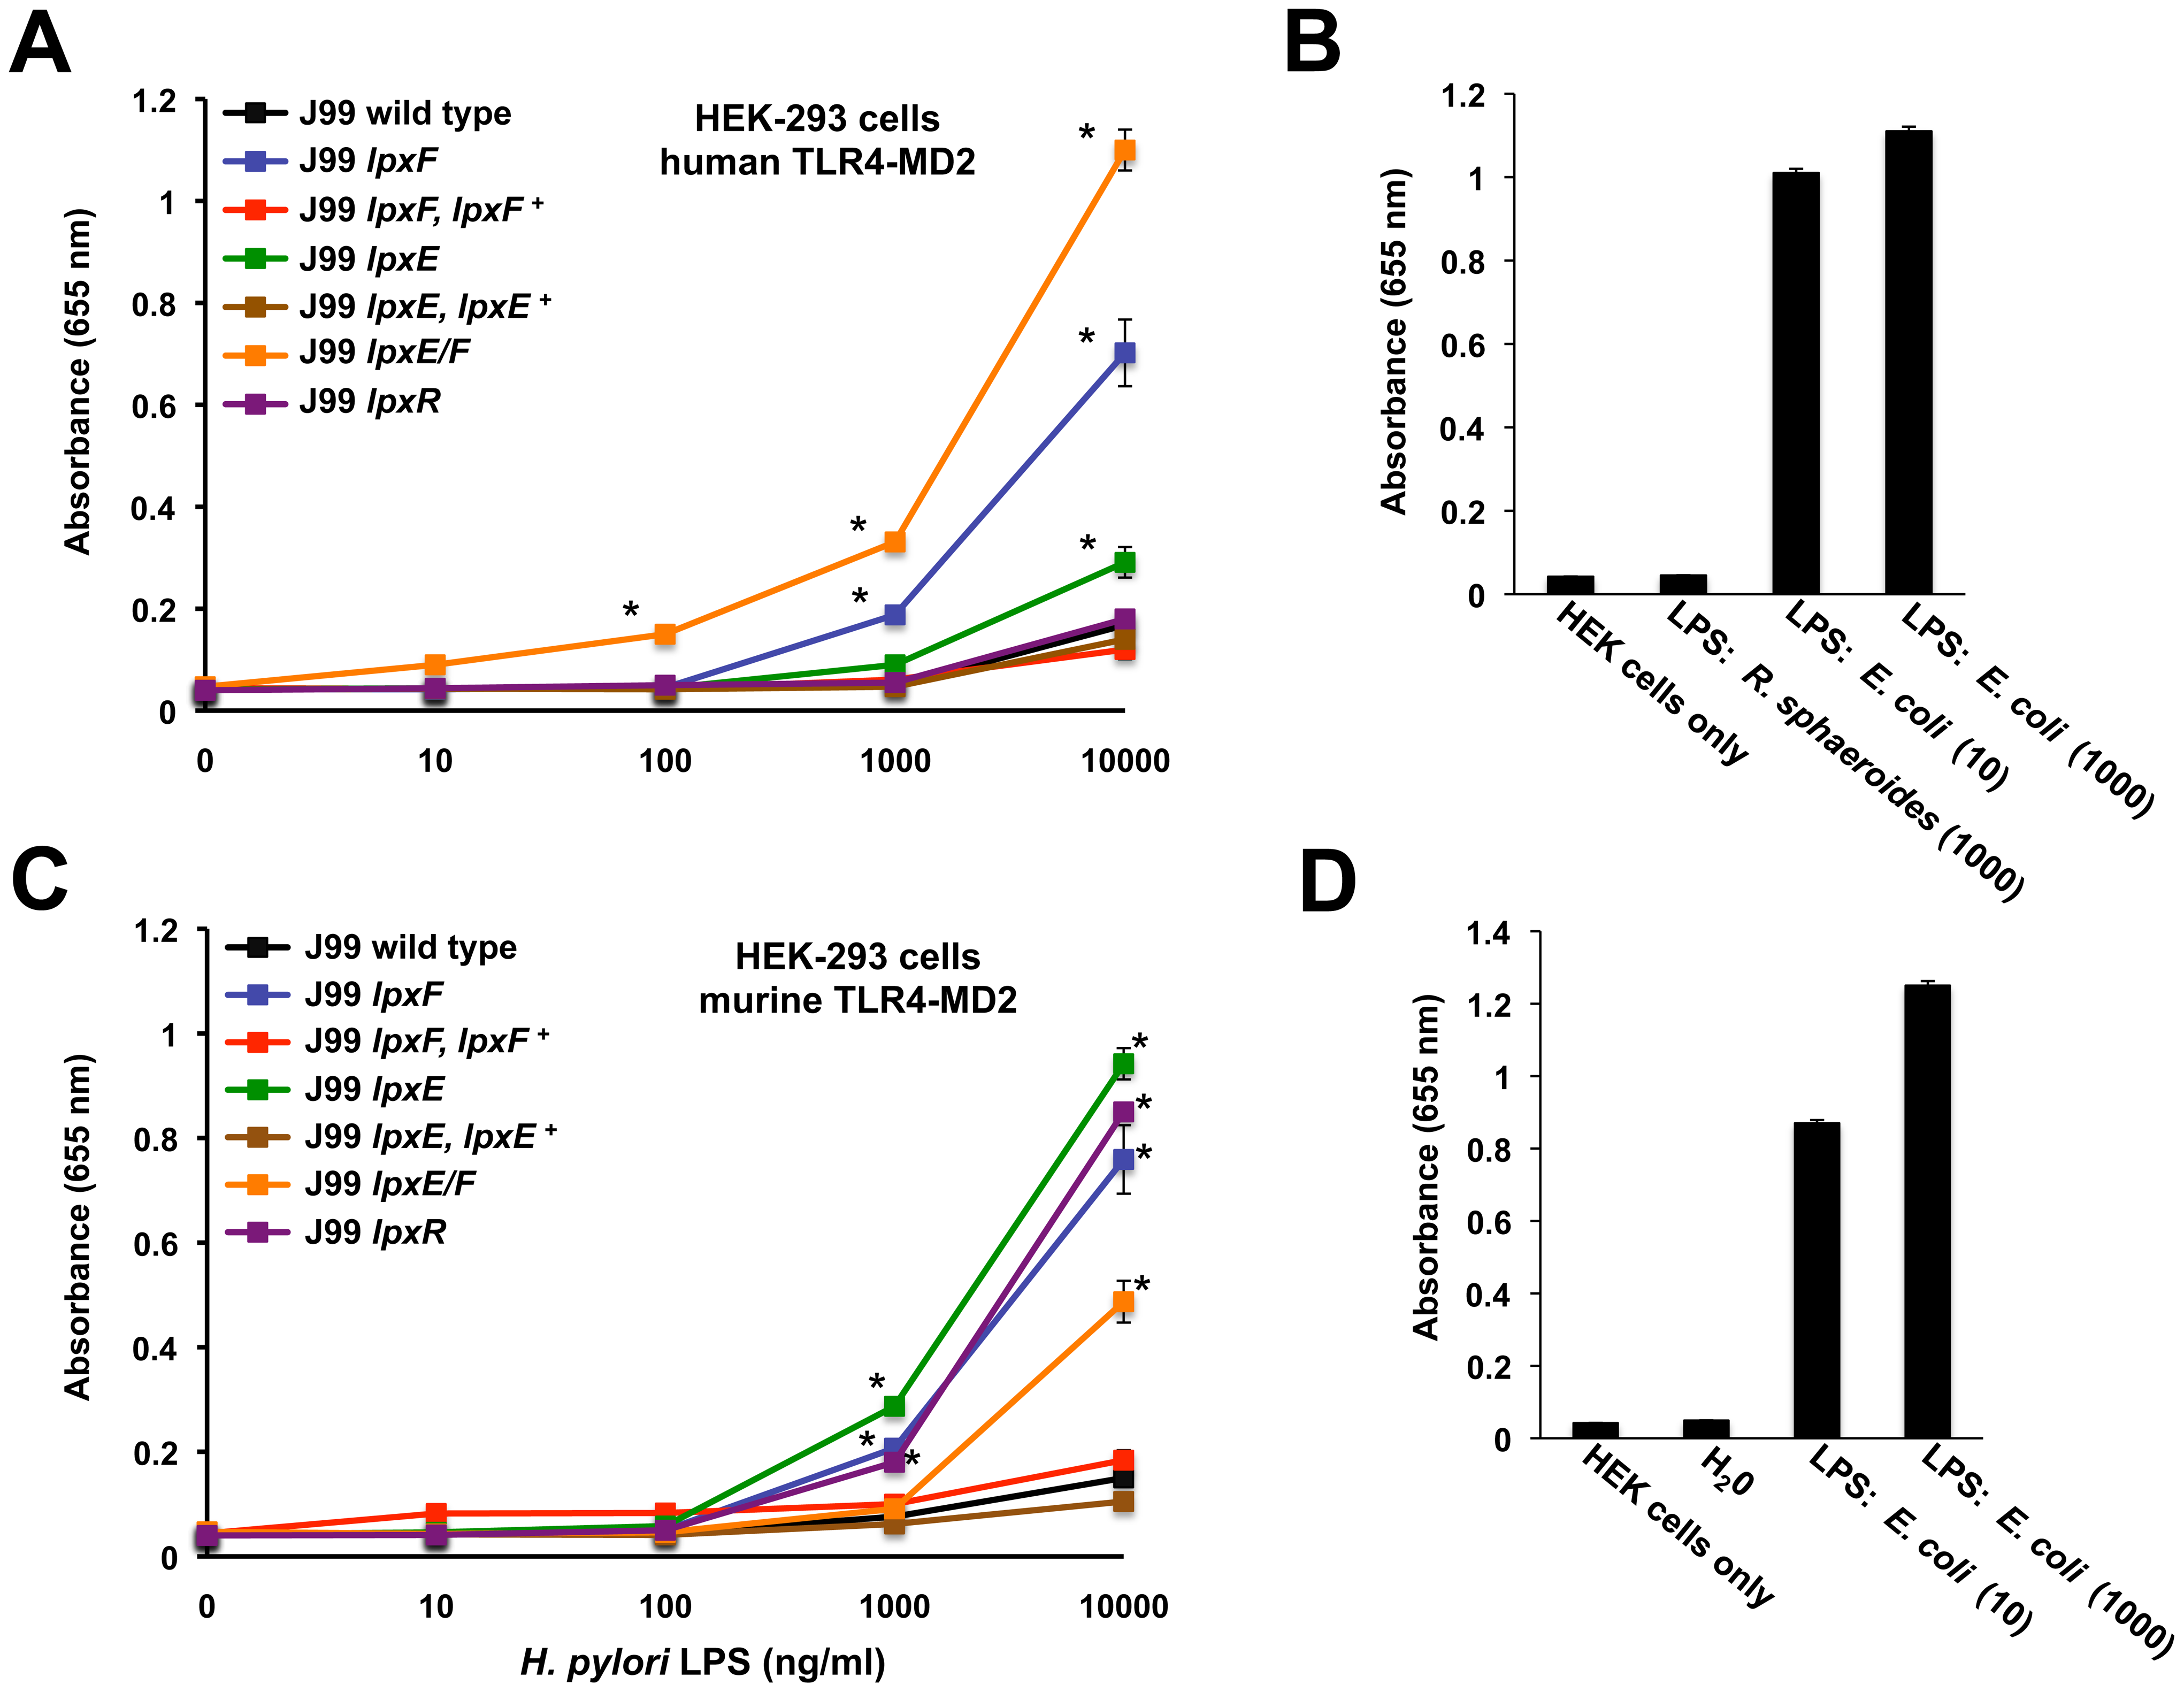 Activation of human or murine TLR4-MD2 by <i>H. pylori</i> LPS.